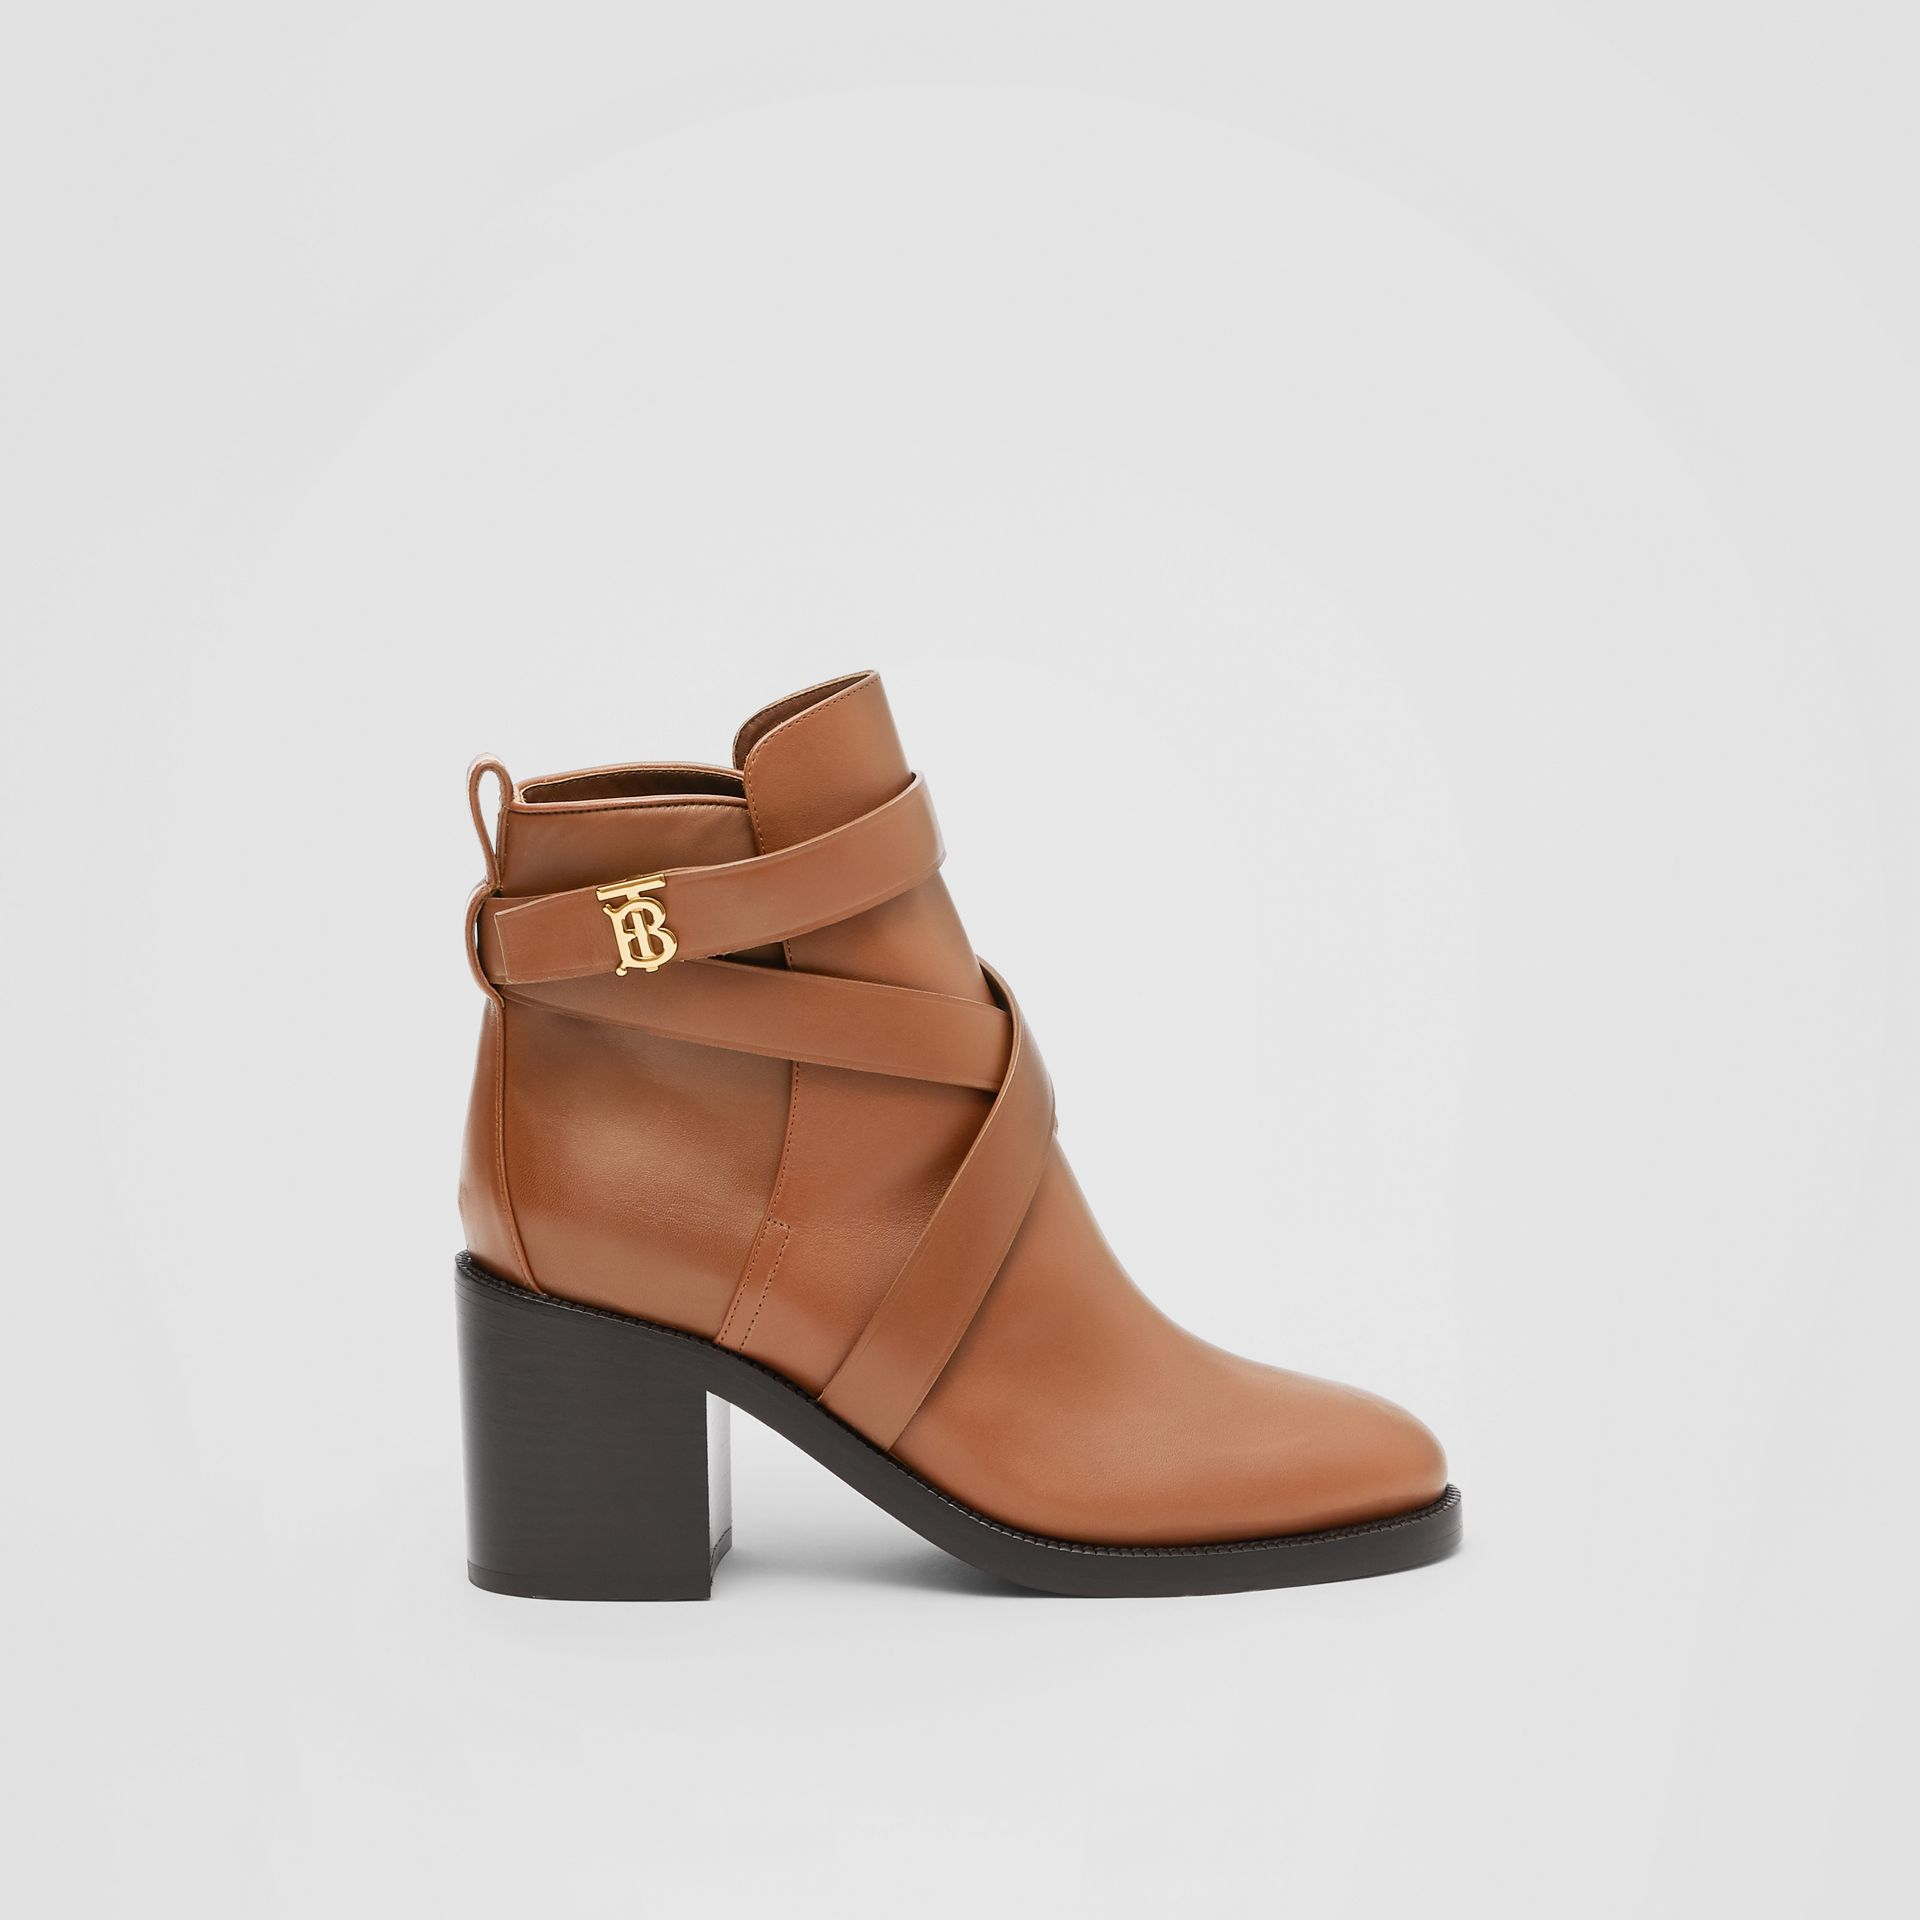 Monogram Motif Leather Ankle Boots in Tan - Women | Burberry United Kingdom - gallery image 4